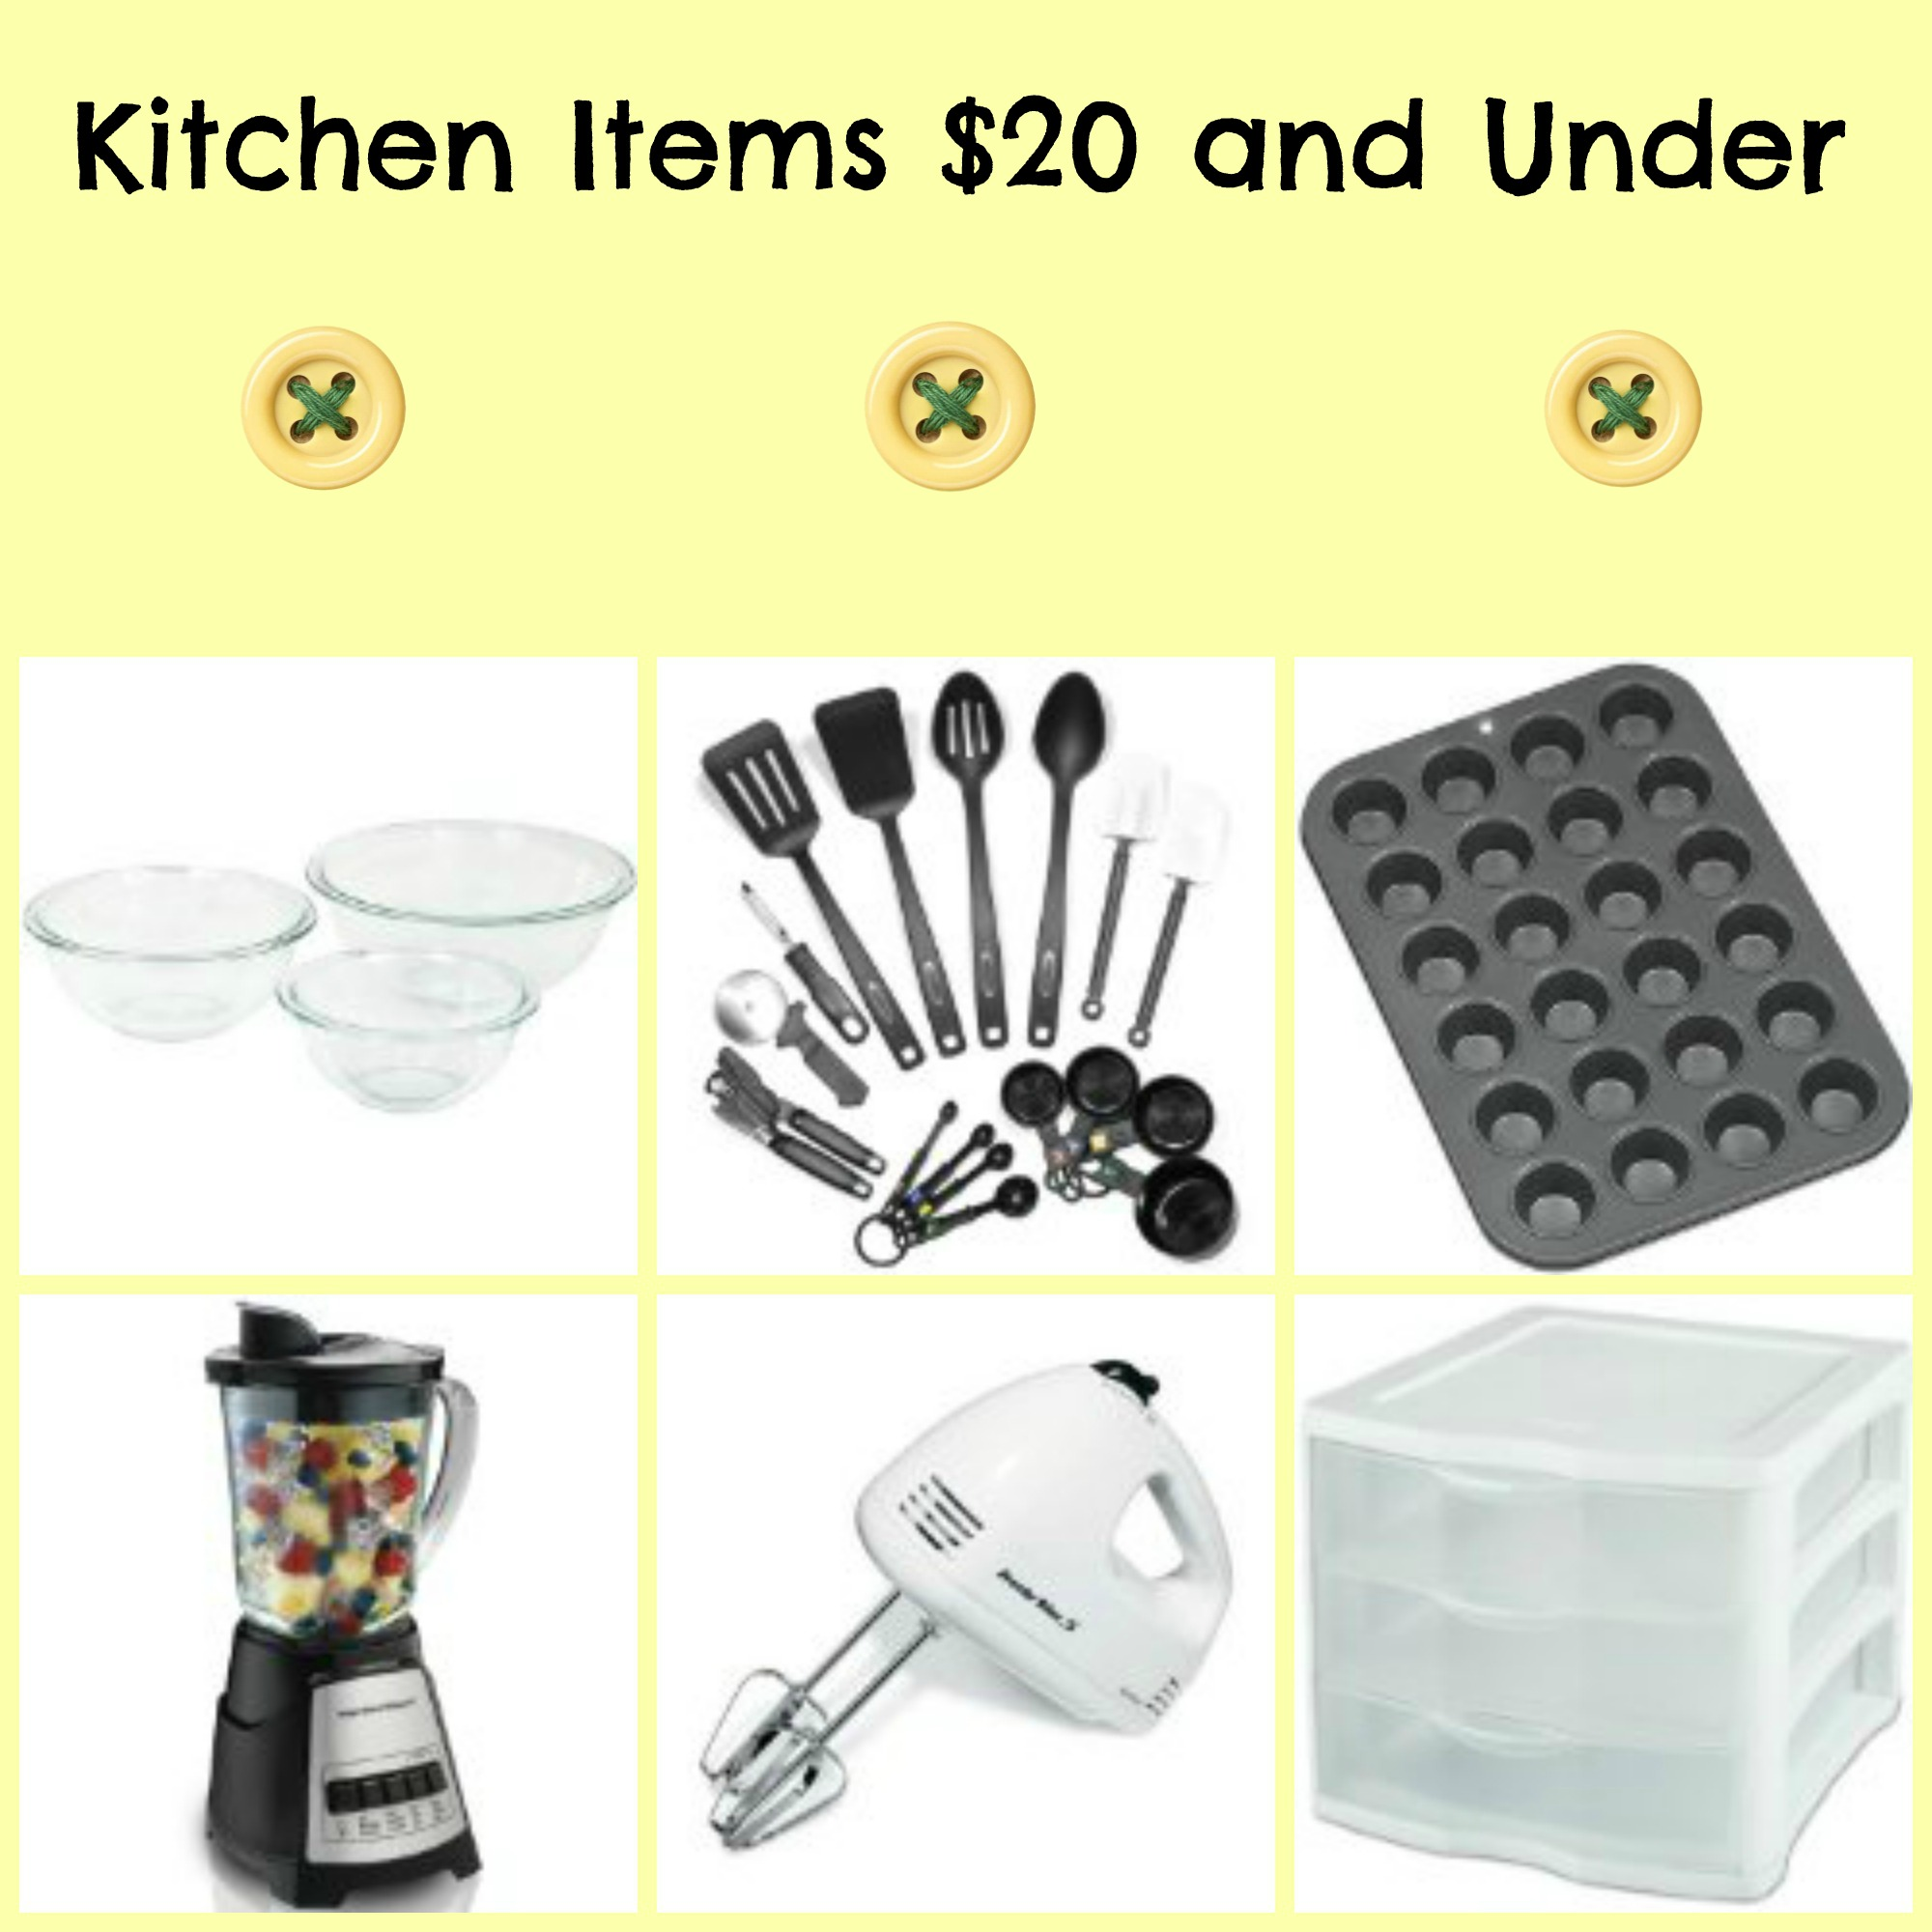 Kitchen Deals on Amazon for $20 or Less